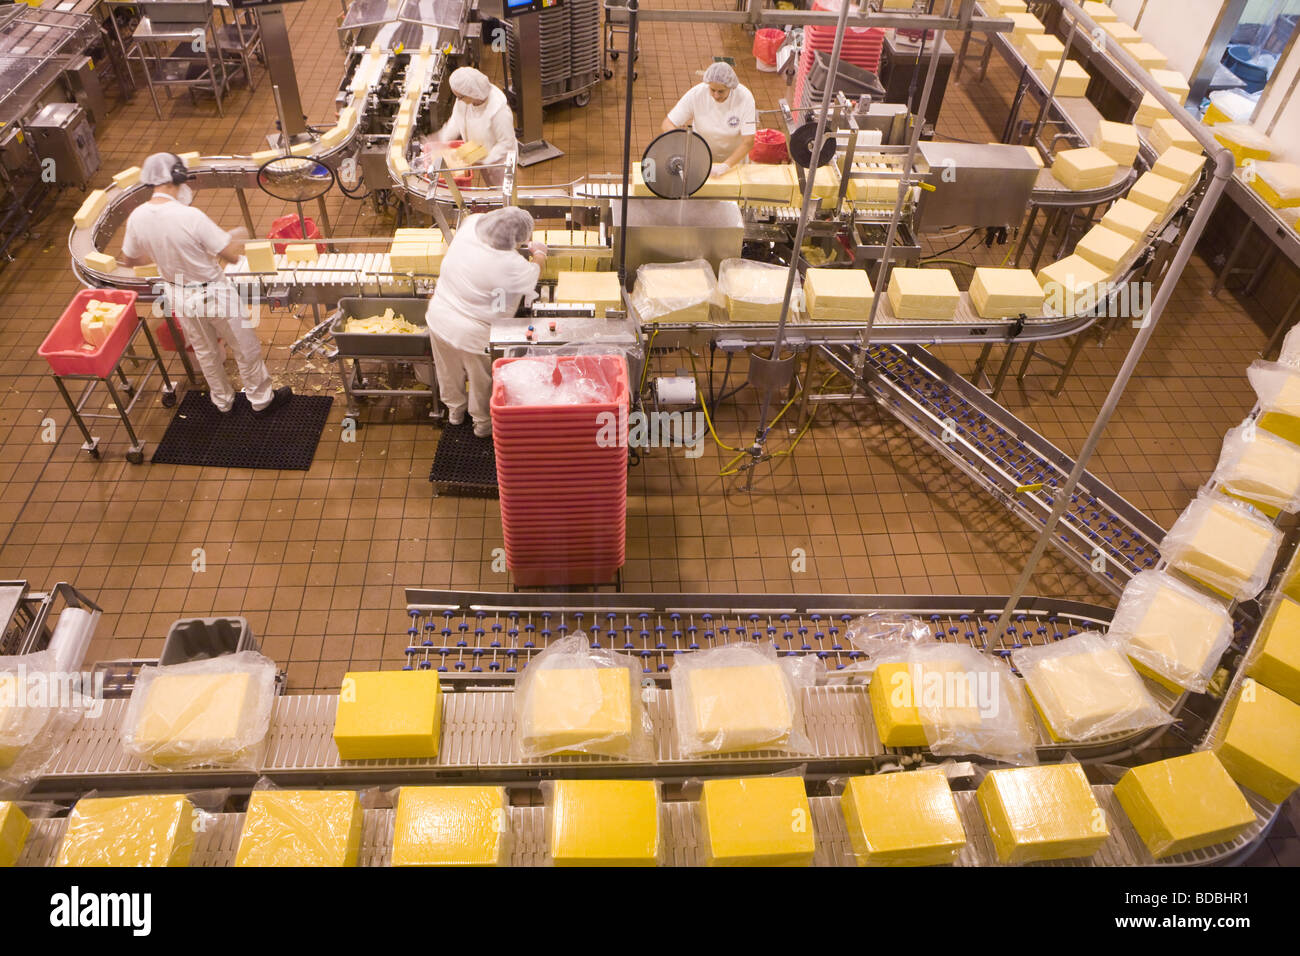 Women on the production line making cheddar cheese at Tillamook Cheese factory in Tillamook Oregon - Stock Image